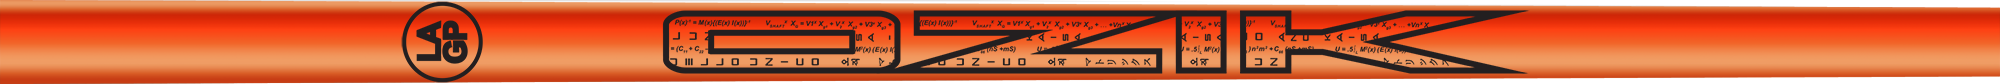 Ozik White Tie: Neon Orange Black Gloss - Wood 70 X